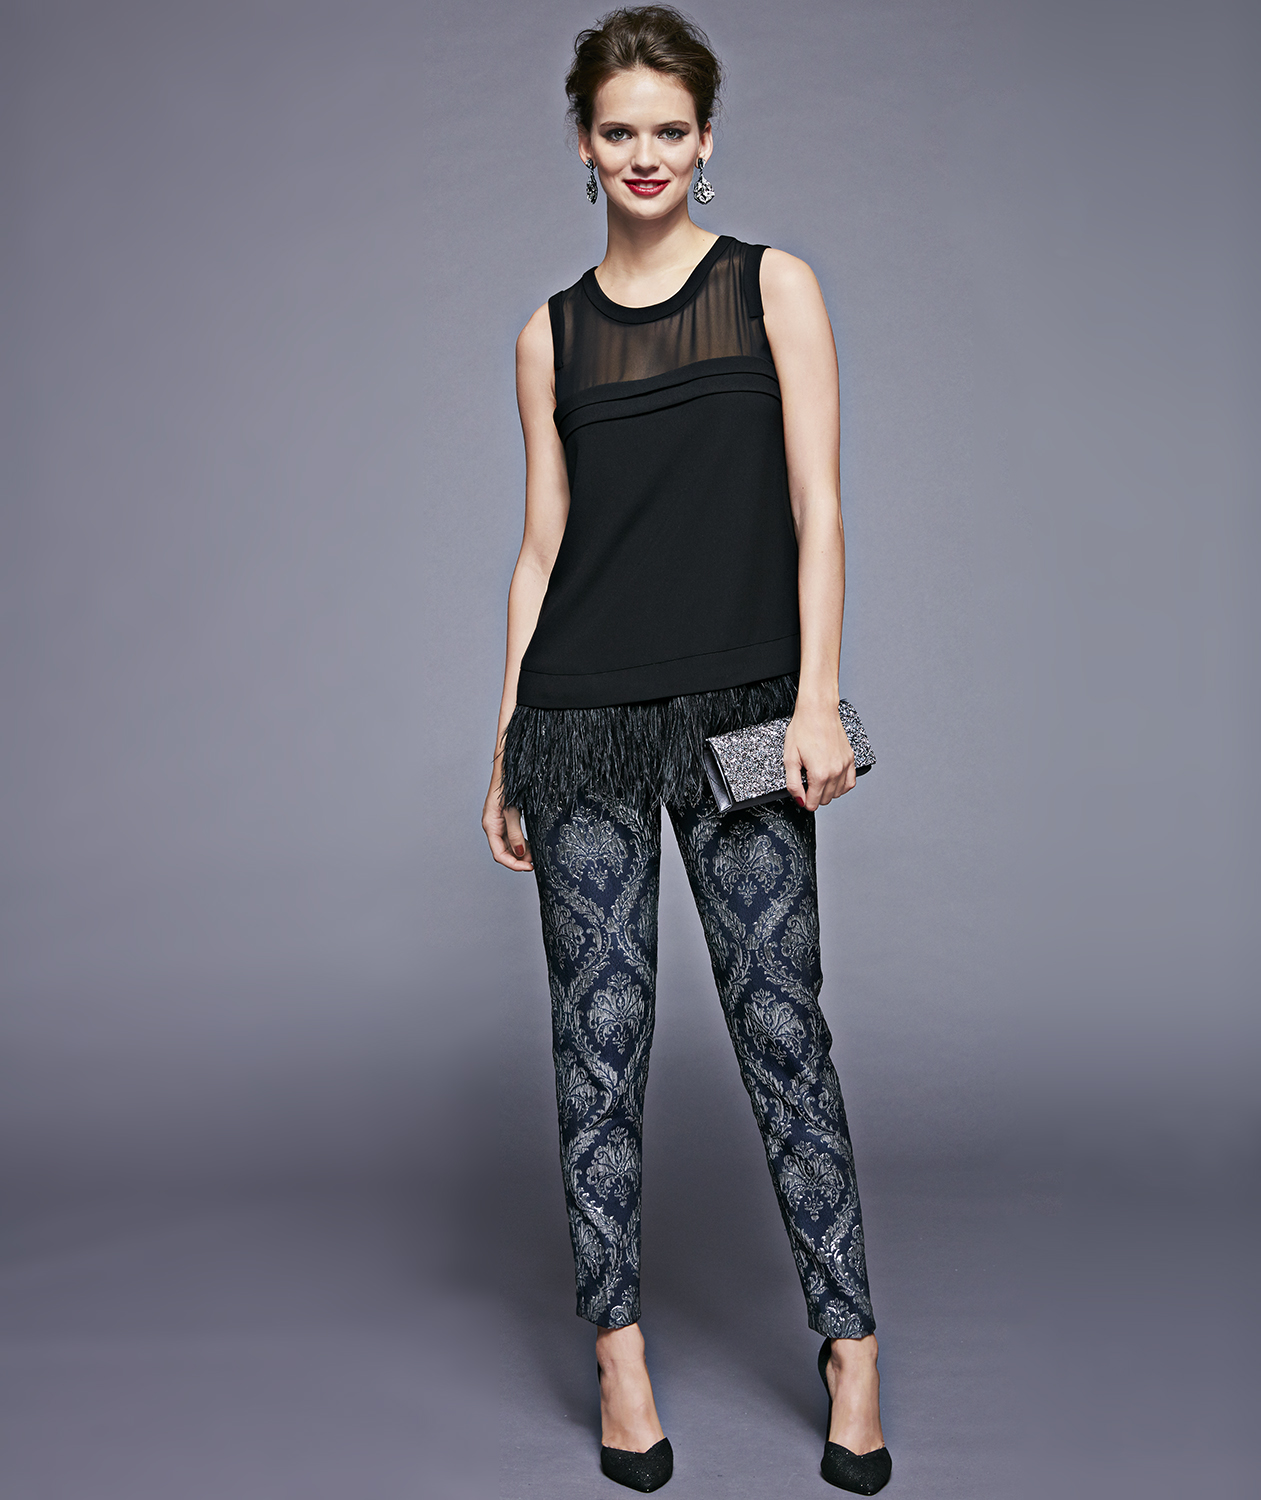 Model with black feather top and metallic patterned pants